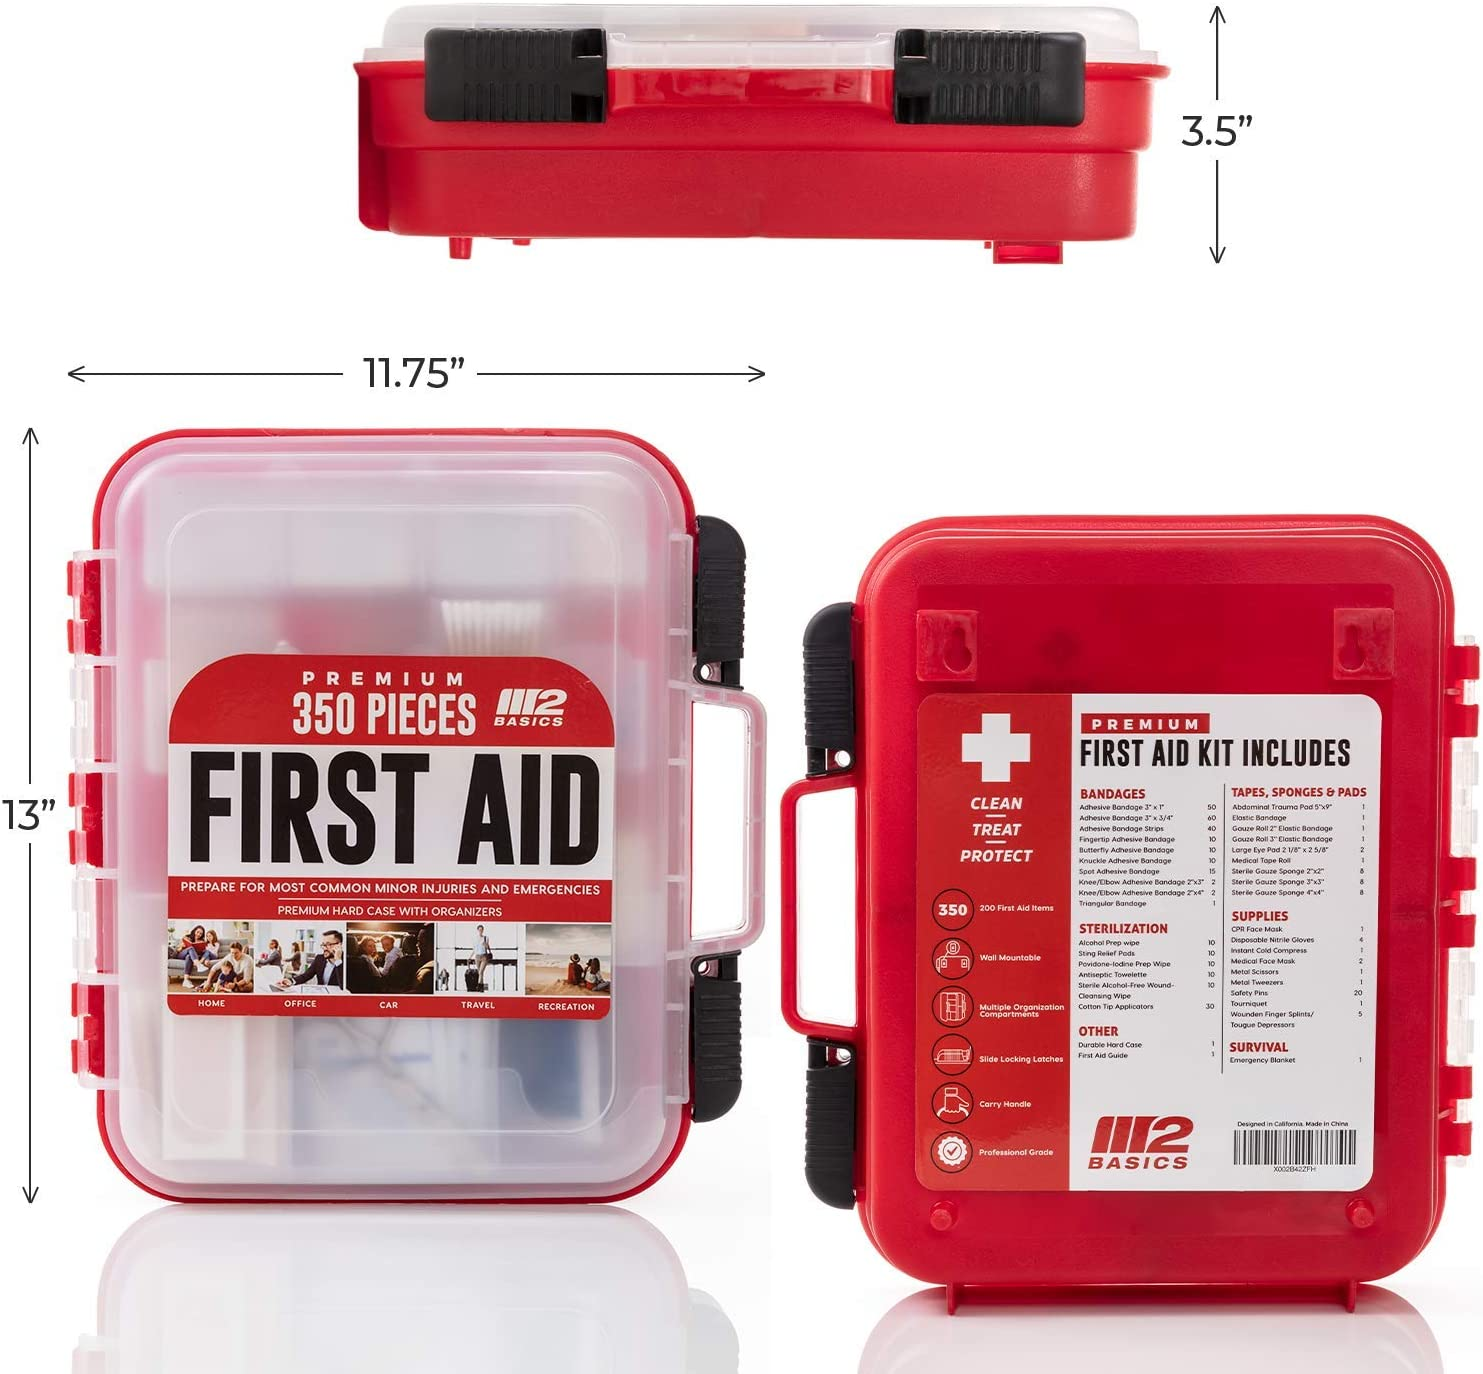 M2 BASICS 350 Piece Professional First Aid Kit | Mountable Hard Case with Dual-Layer Organizers for Business, School or Home: Health & Personal Care